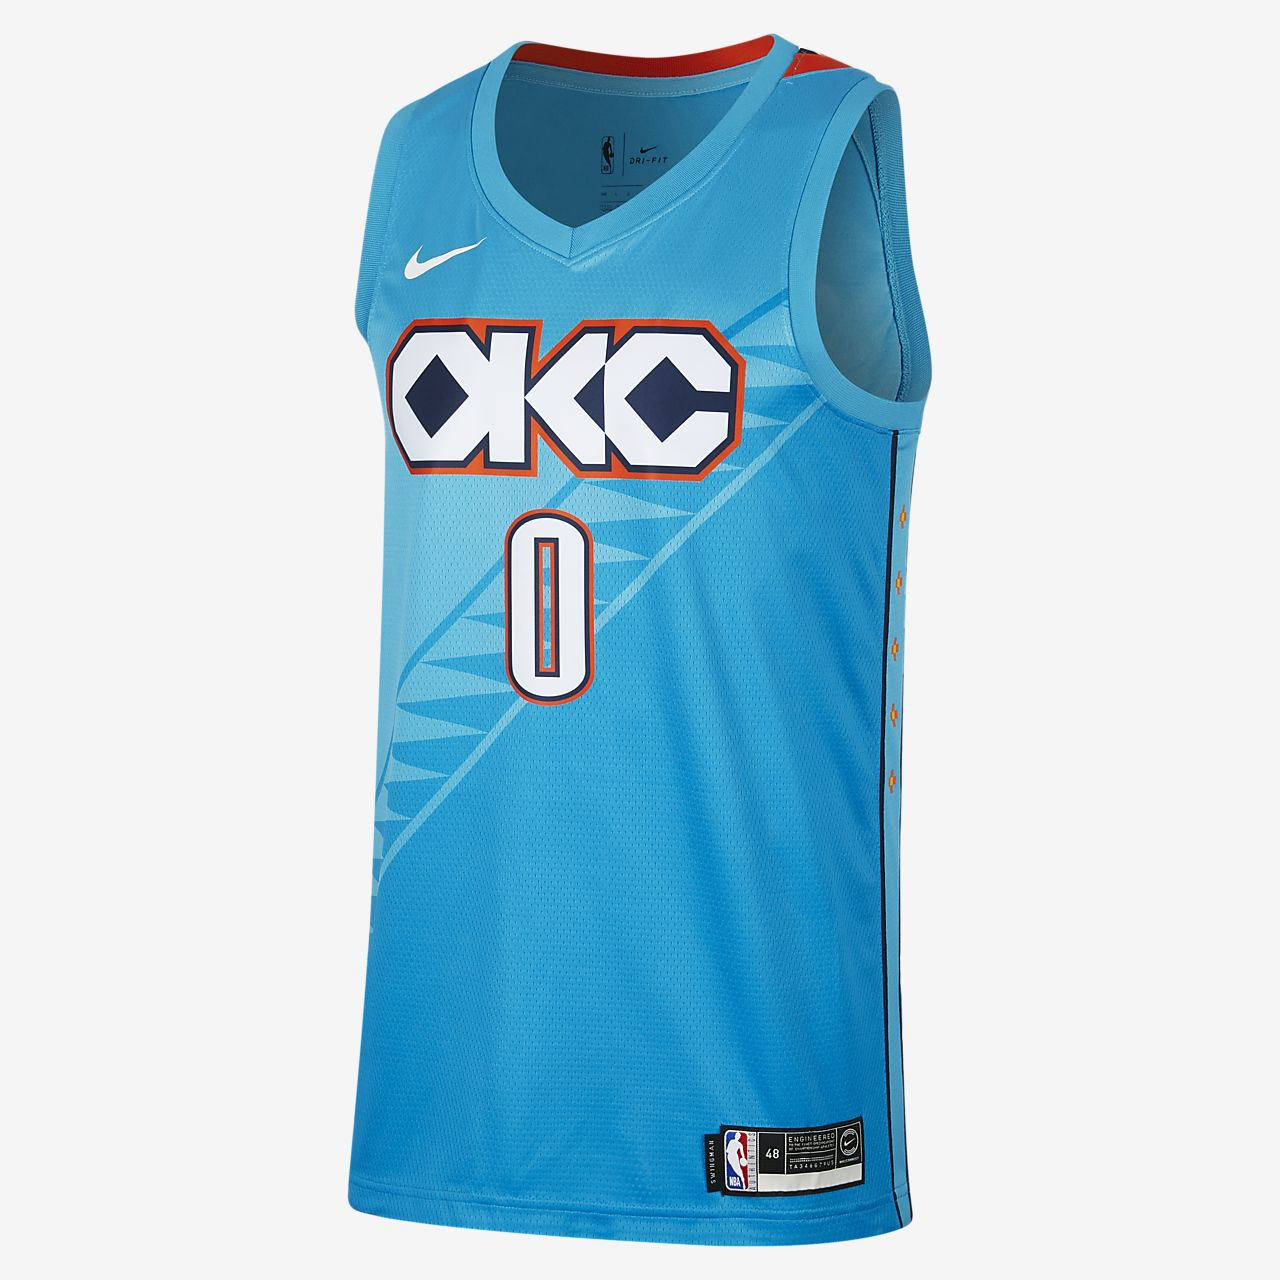 俄克拉荷马城雷霆队 (Russell Westbrook) City Edition Swingman Nike NBA Connected Jersey 男子球衣